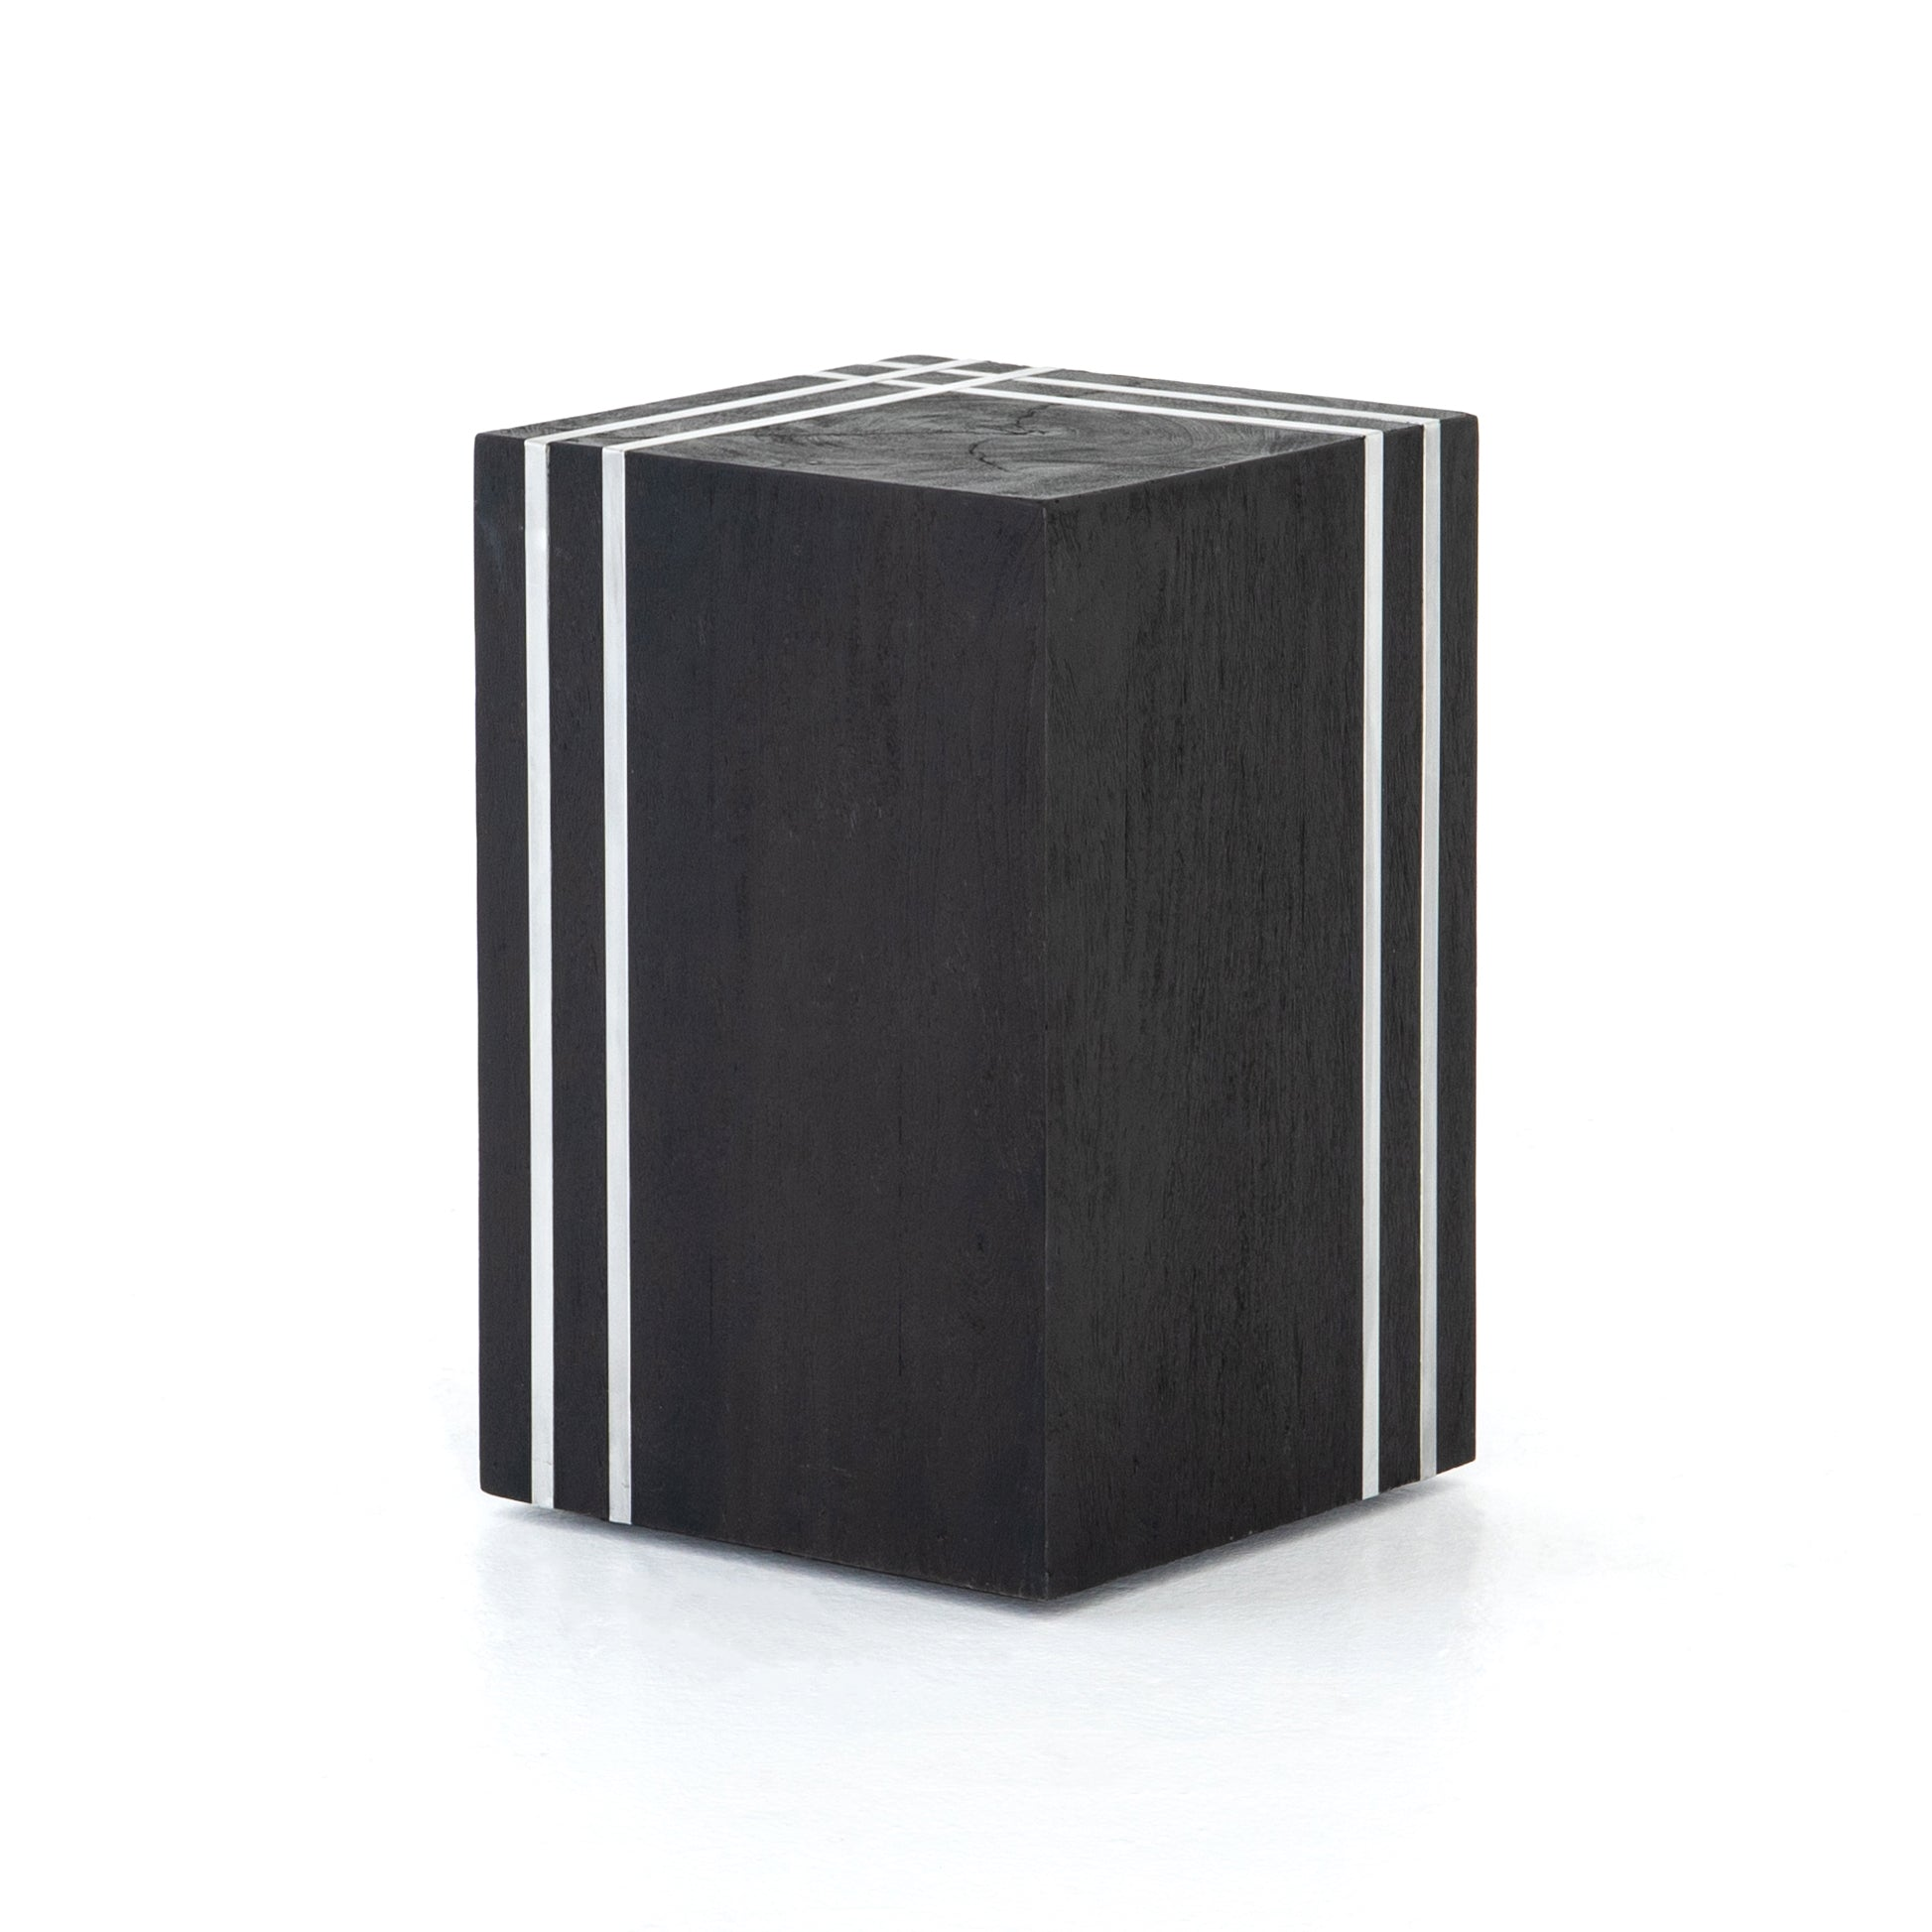 Kessler Stool - Black/Stainless